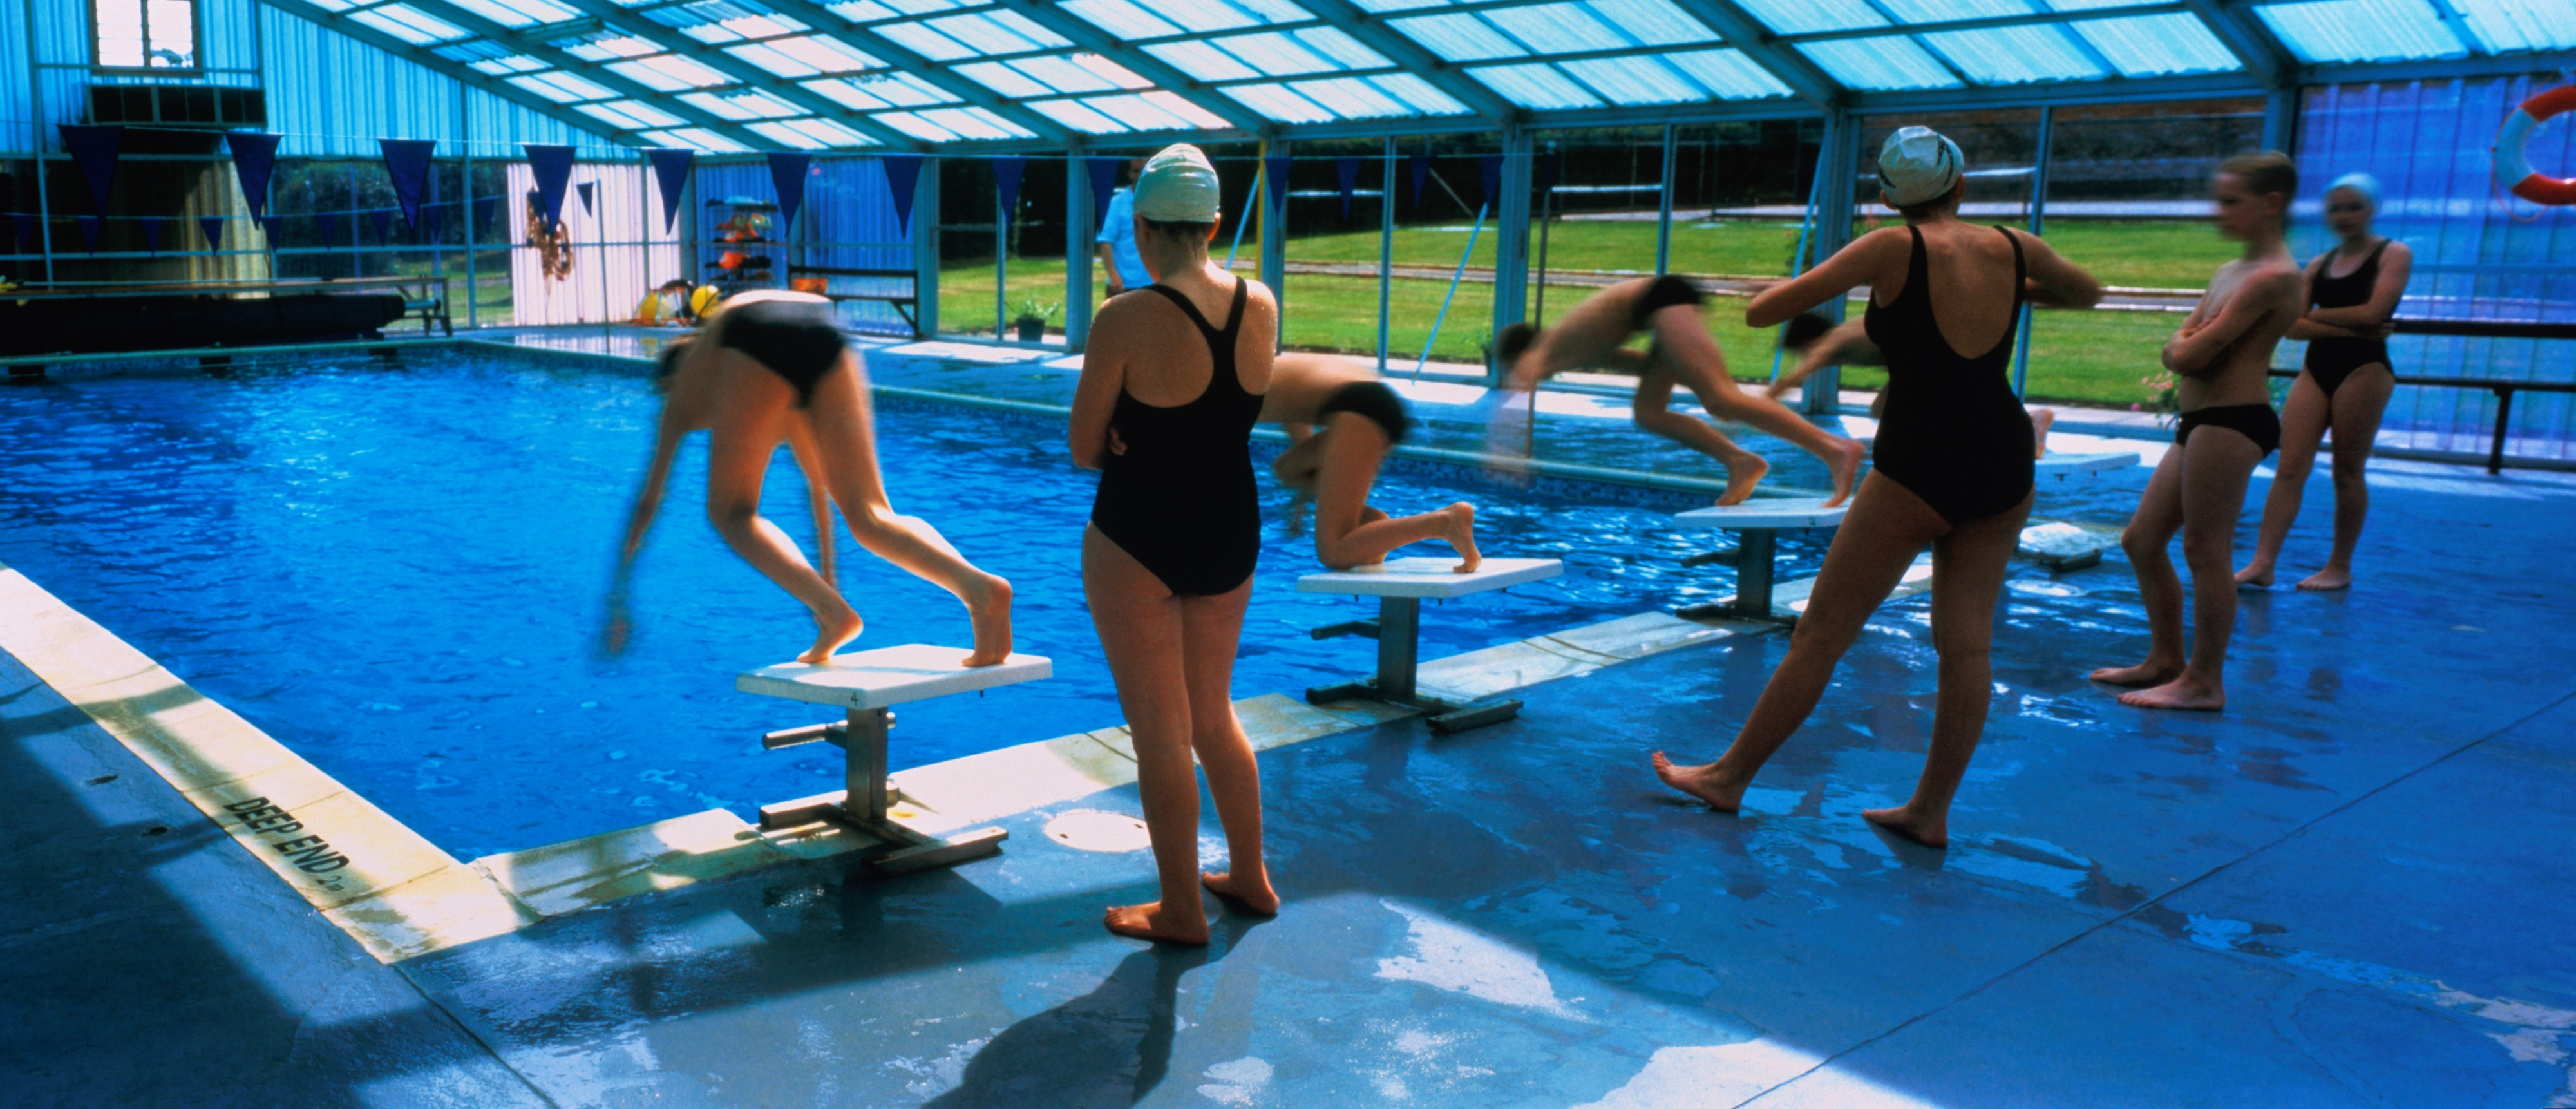 Alaska\u0027s Swimsuit Scandal Unfairly Polices Young Girls\u0027 Bodies